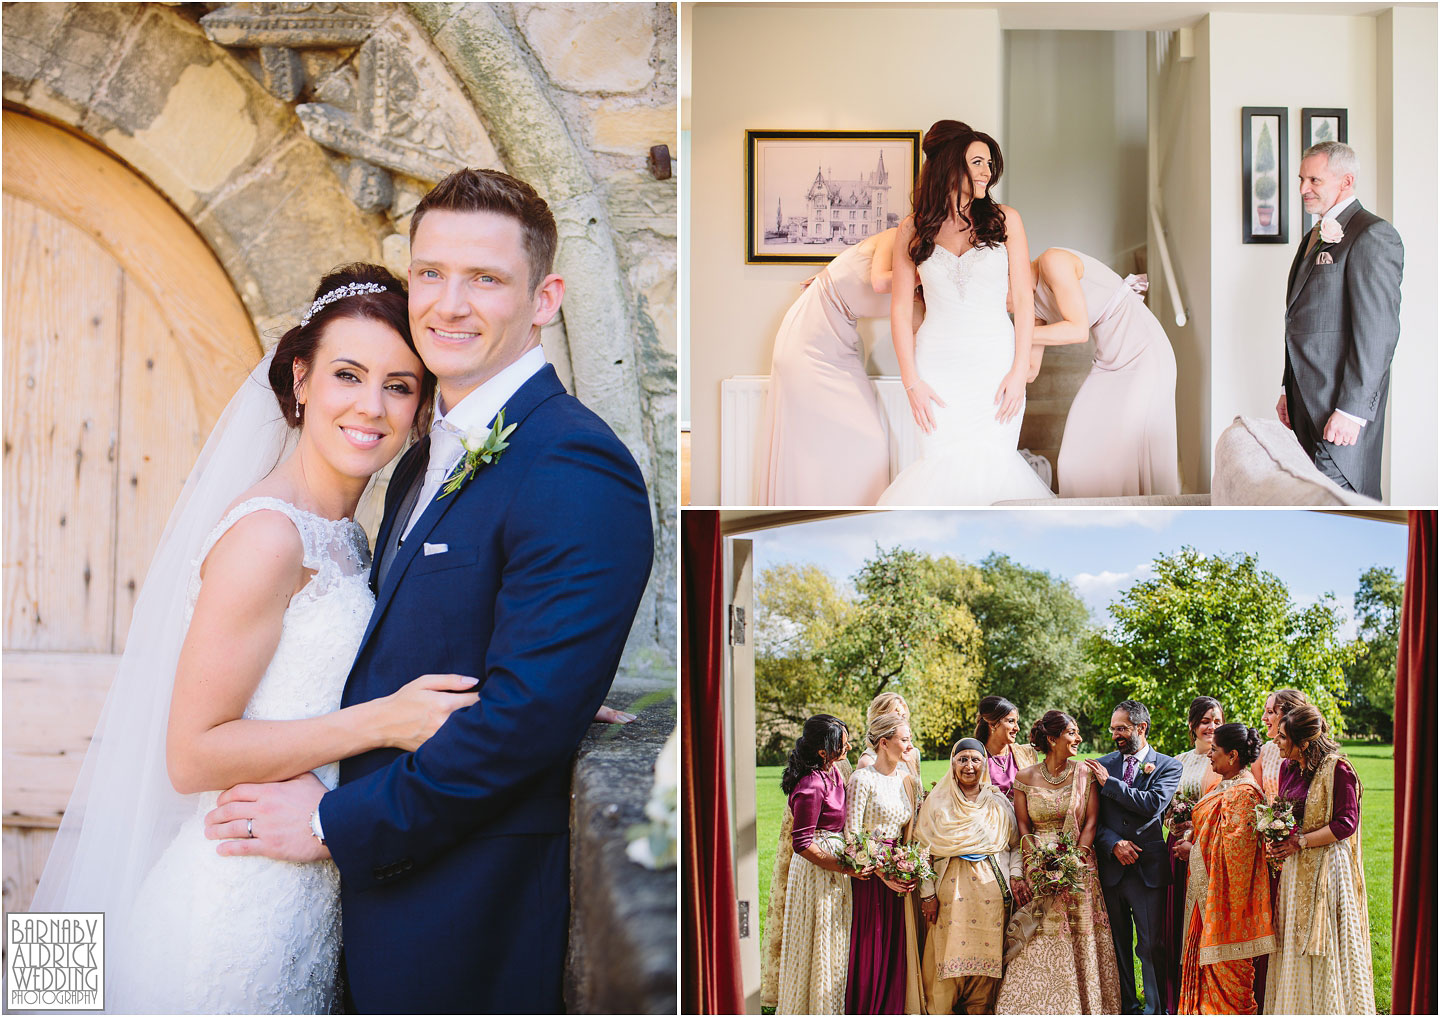 A collage of images of a wedding couple and a family group at Priory Cottages